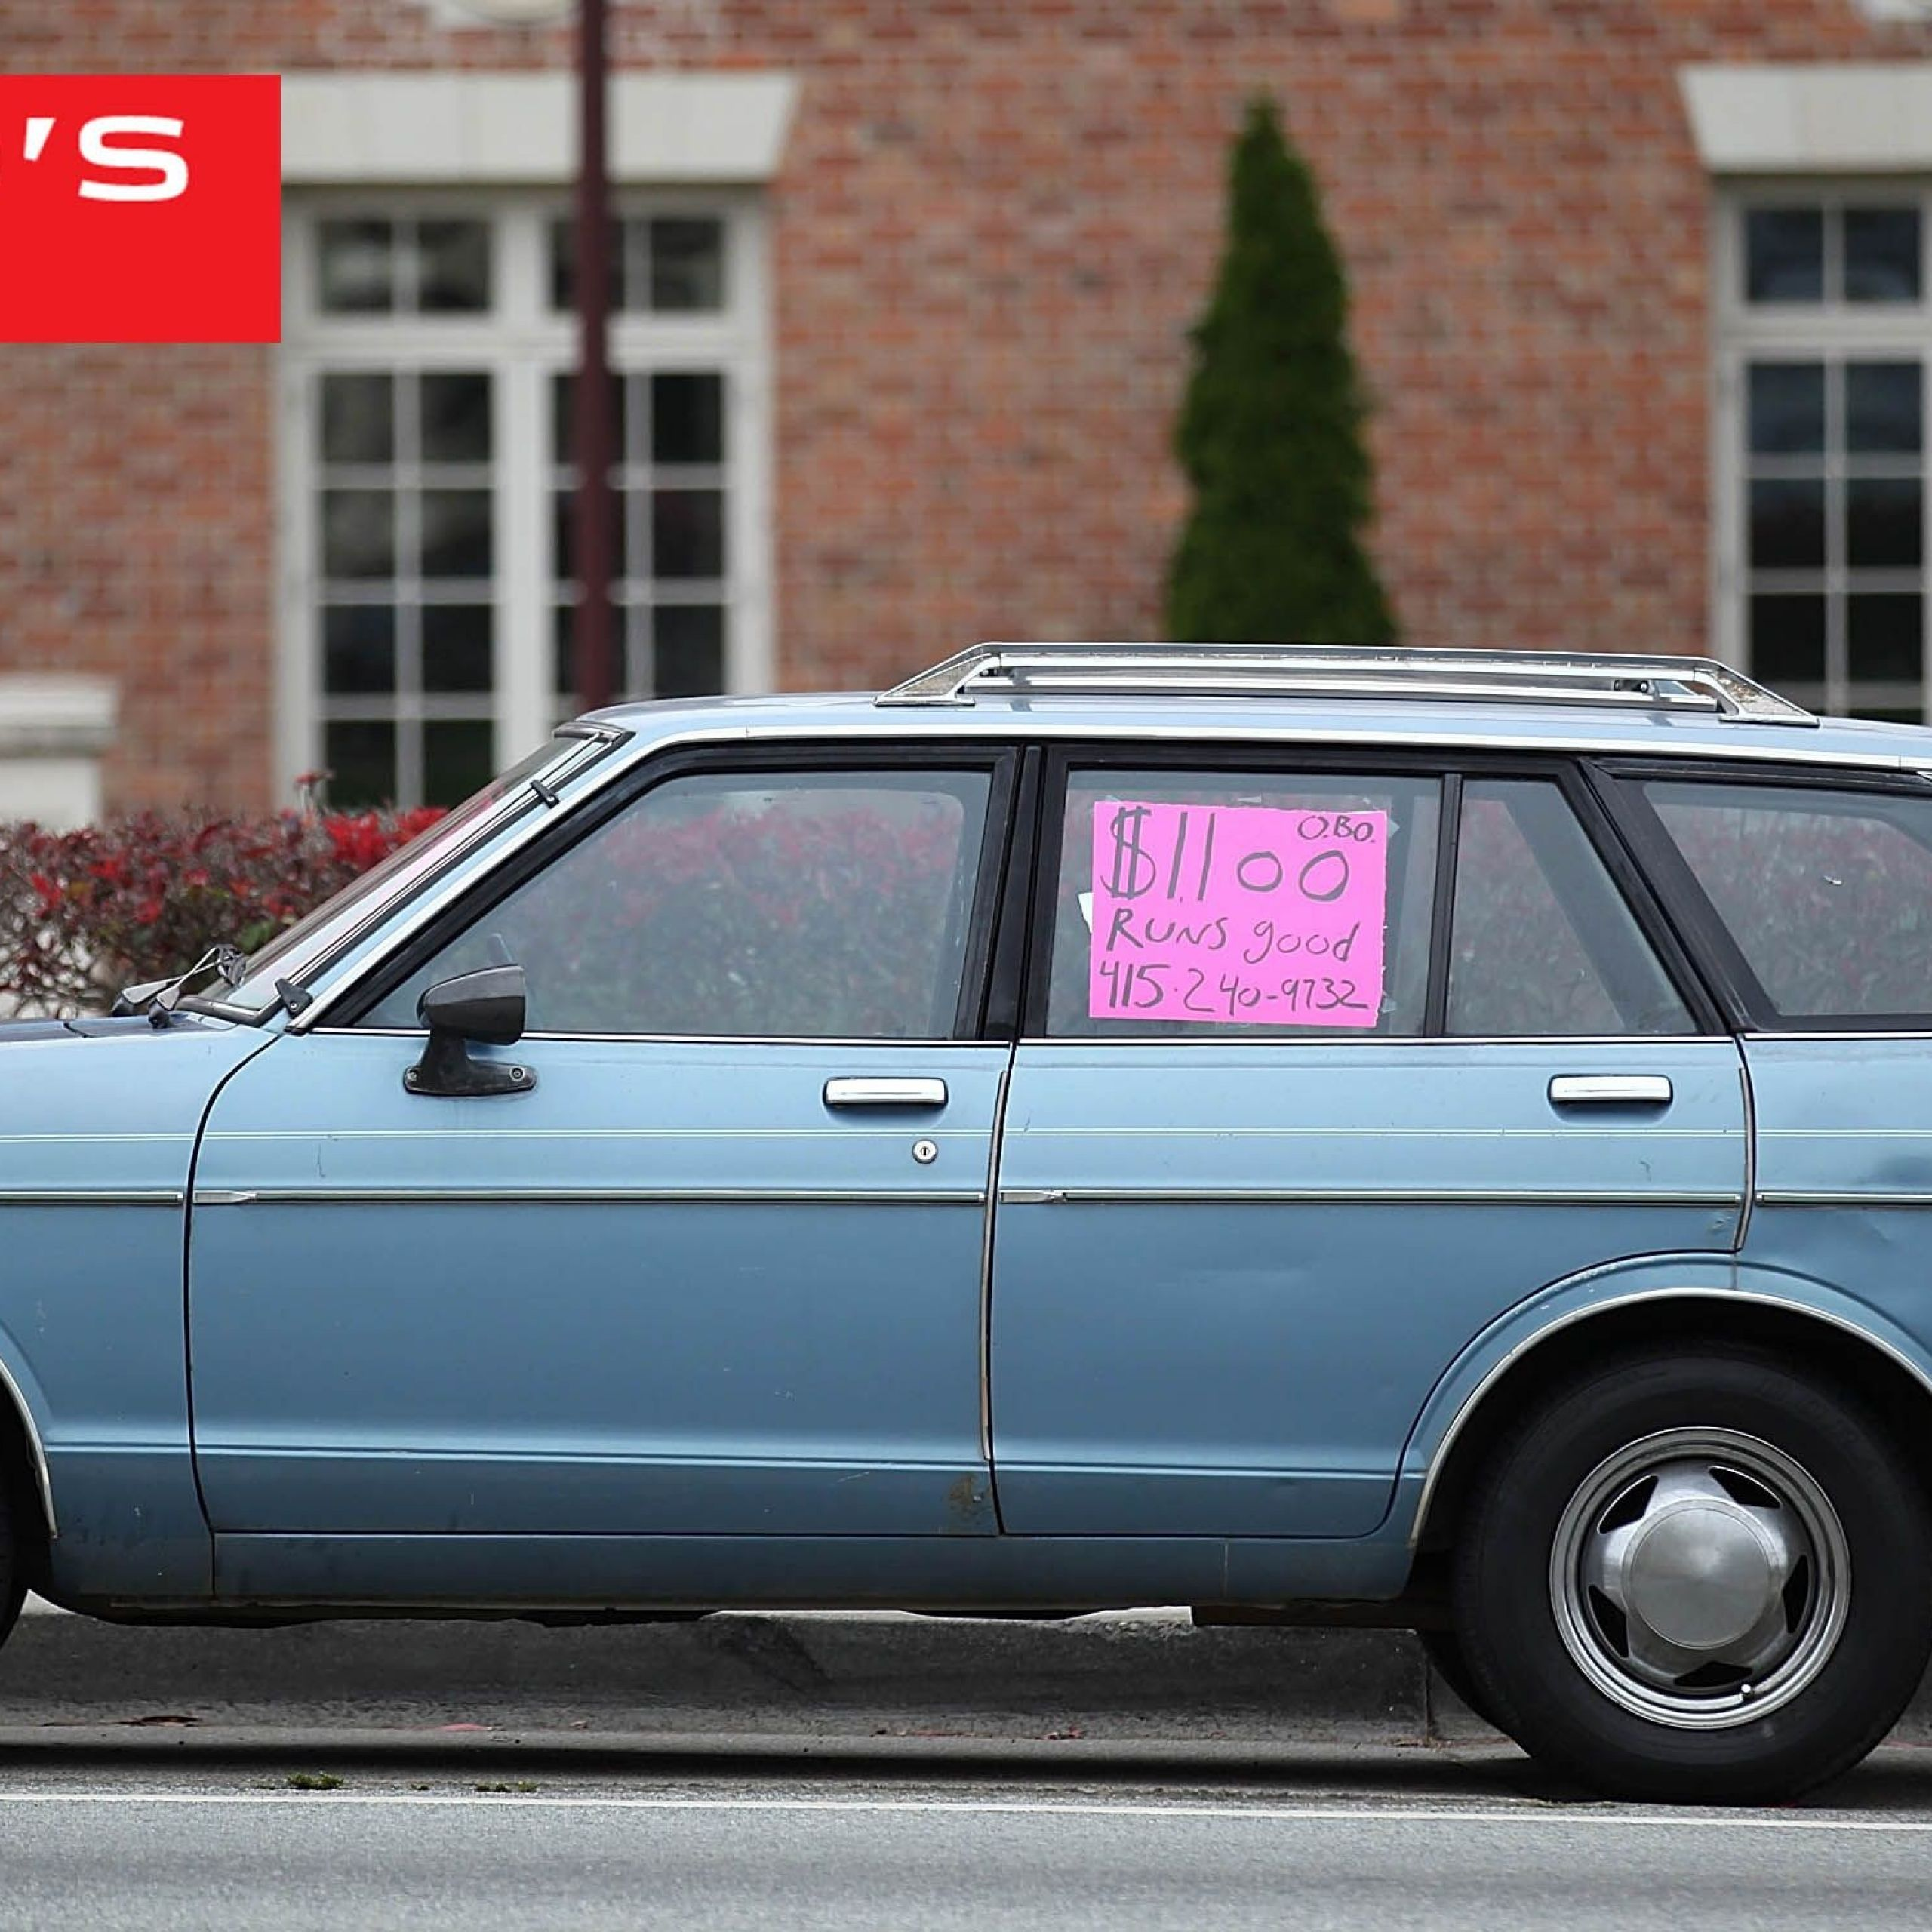 Cars for Sale Near Me Craigslist Beautiful Cars for Sale by Private Owner Blog Otomotif Keren